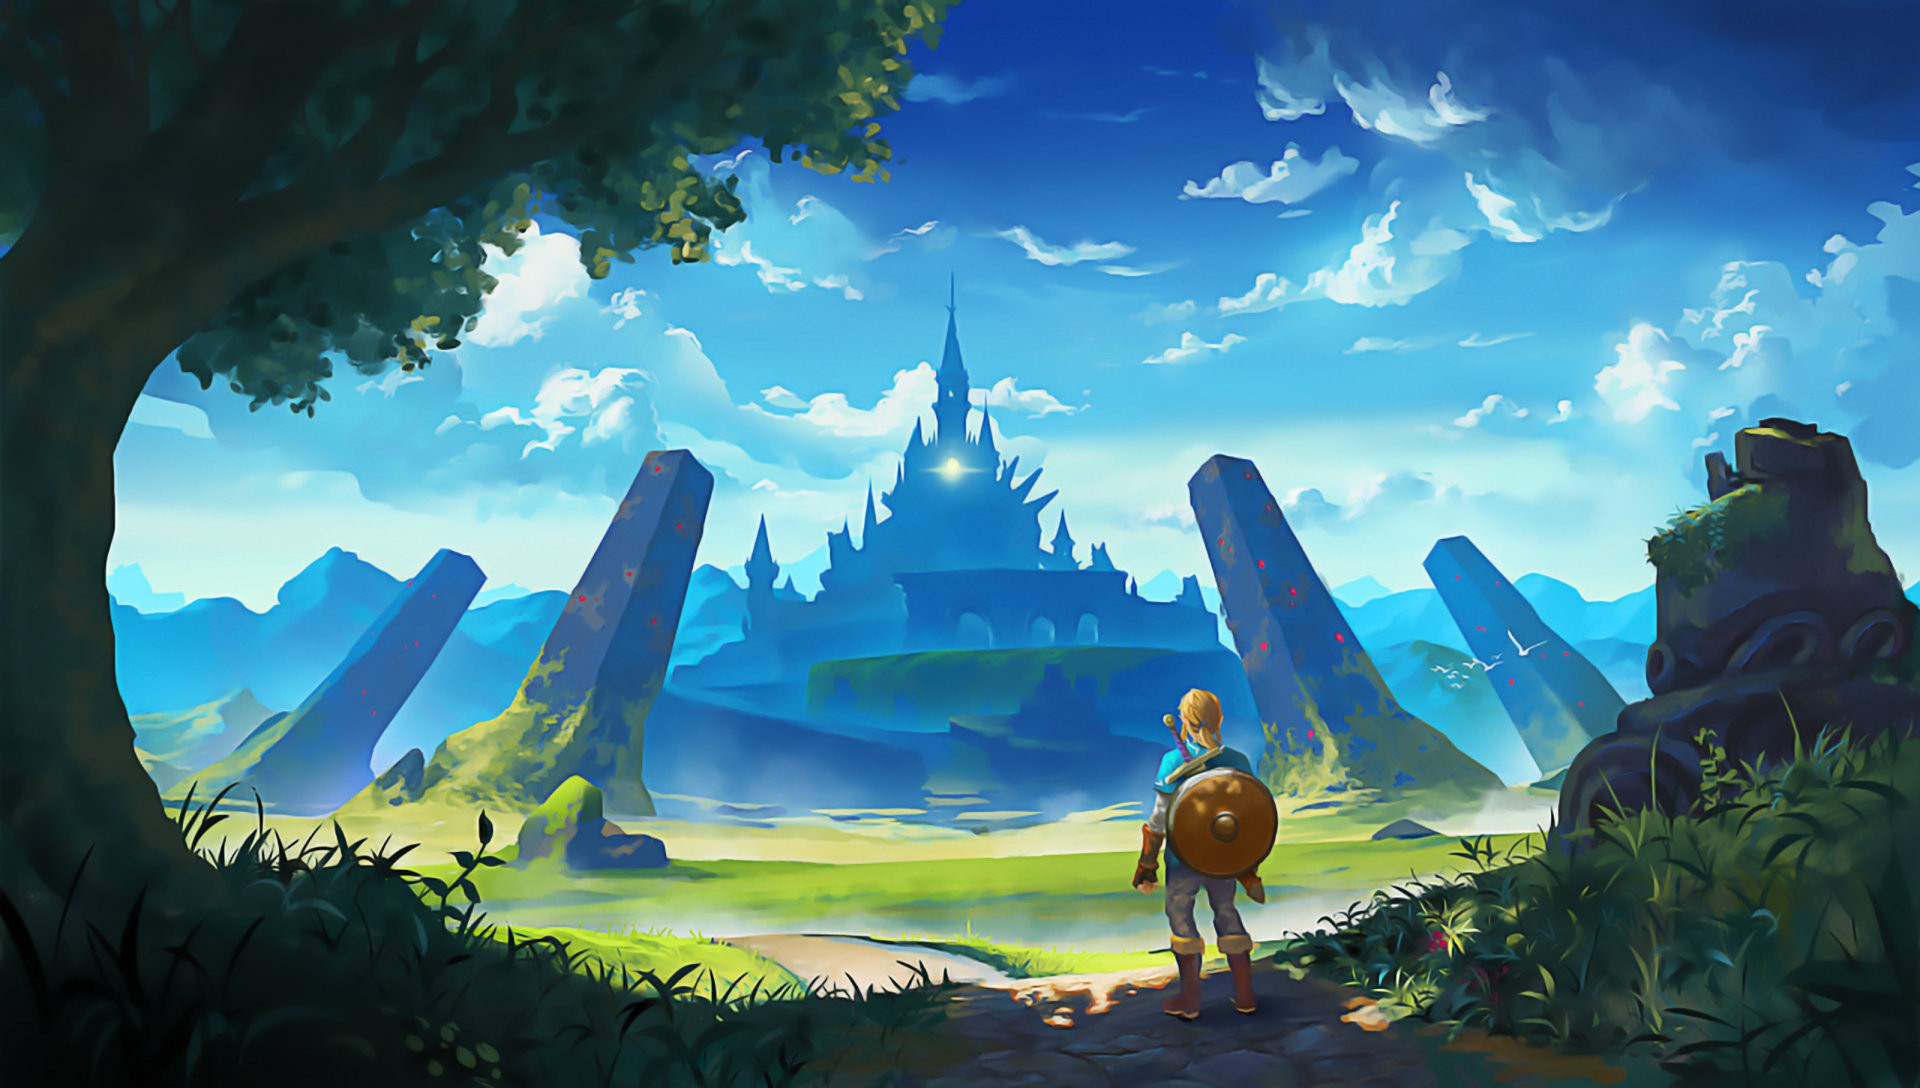 Video Game The Legend Of Zelda Breath Of The Wild Zelda Link The Legend Of Zelda Wallpaper Legend Of Zelda Zelda Hd Legend Of Zelda Breath